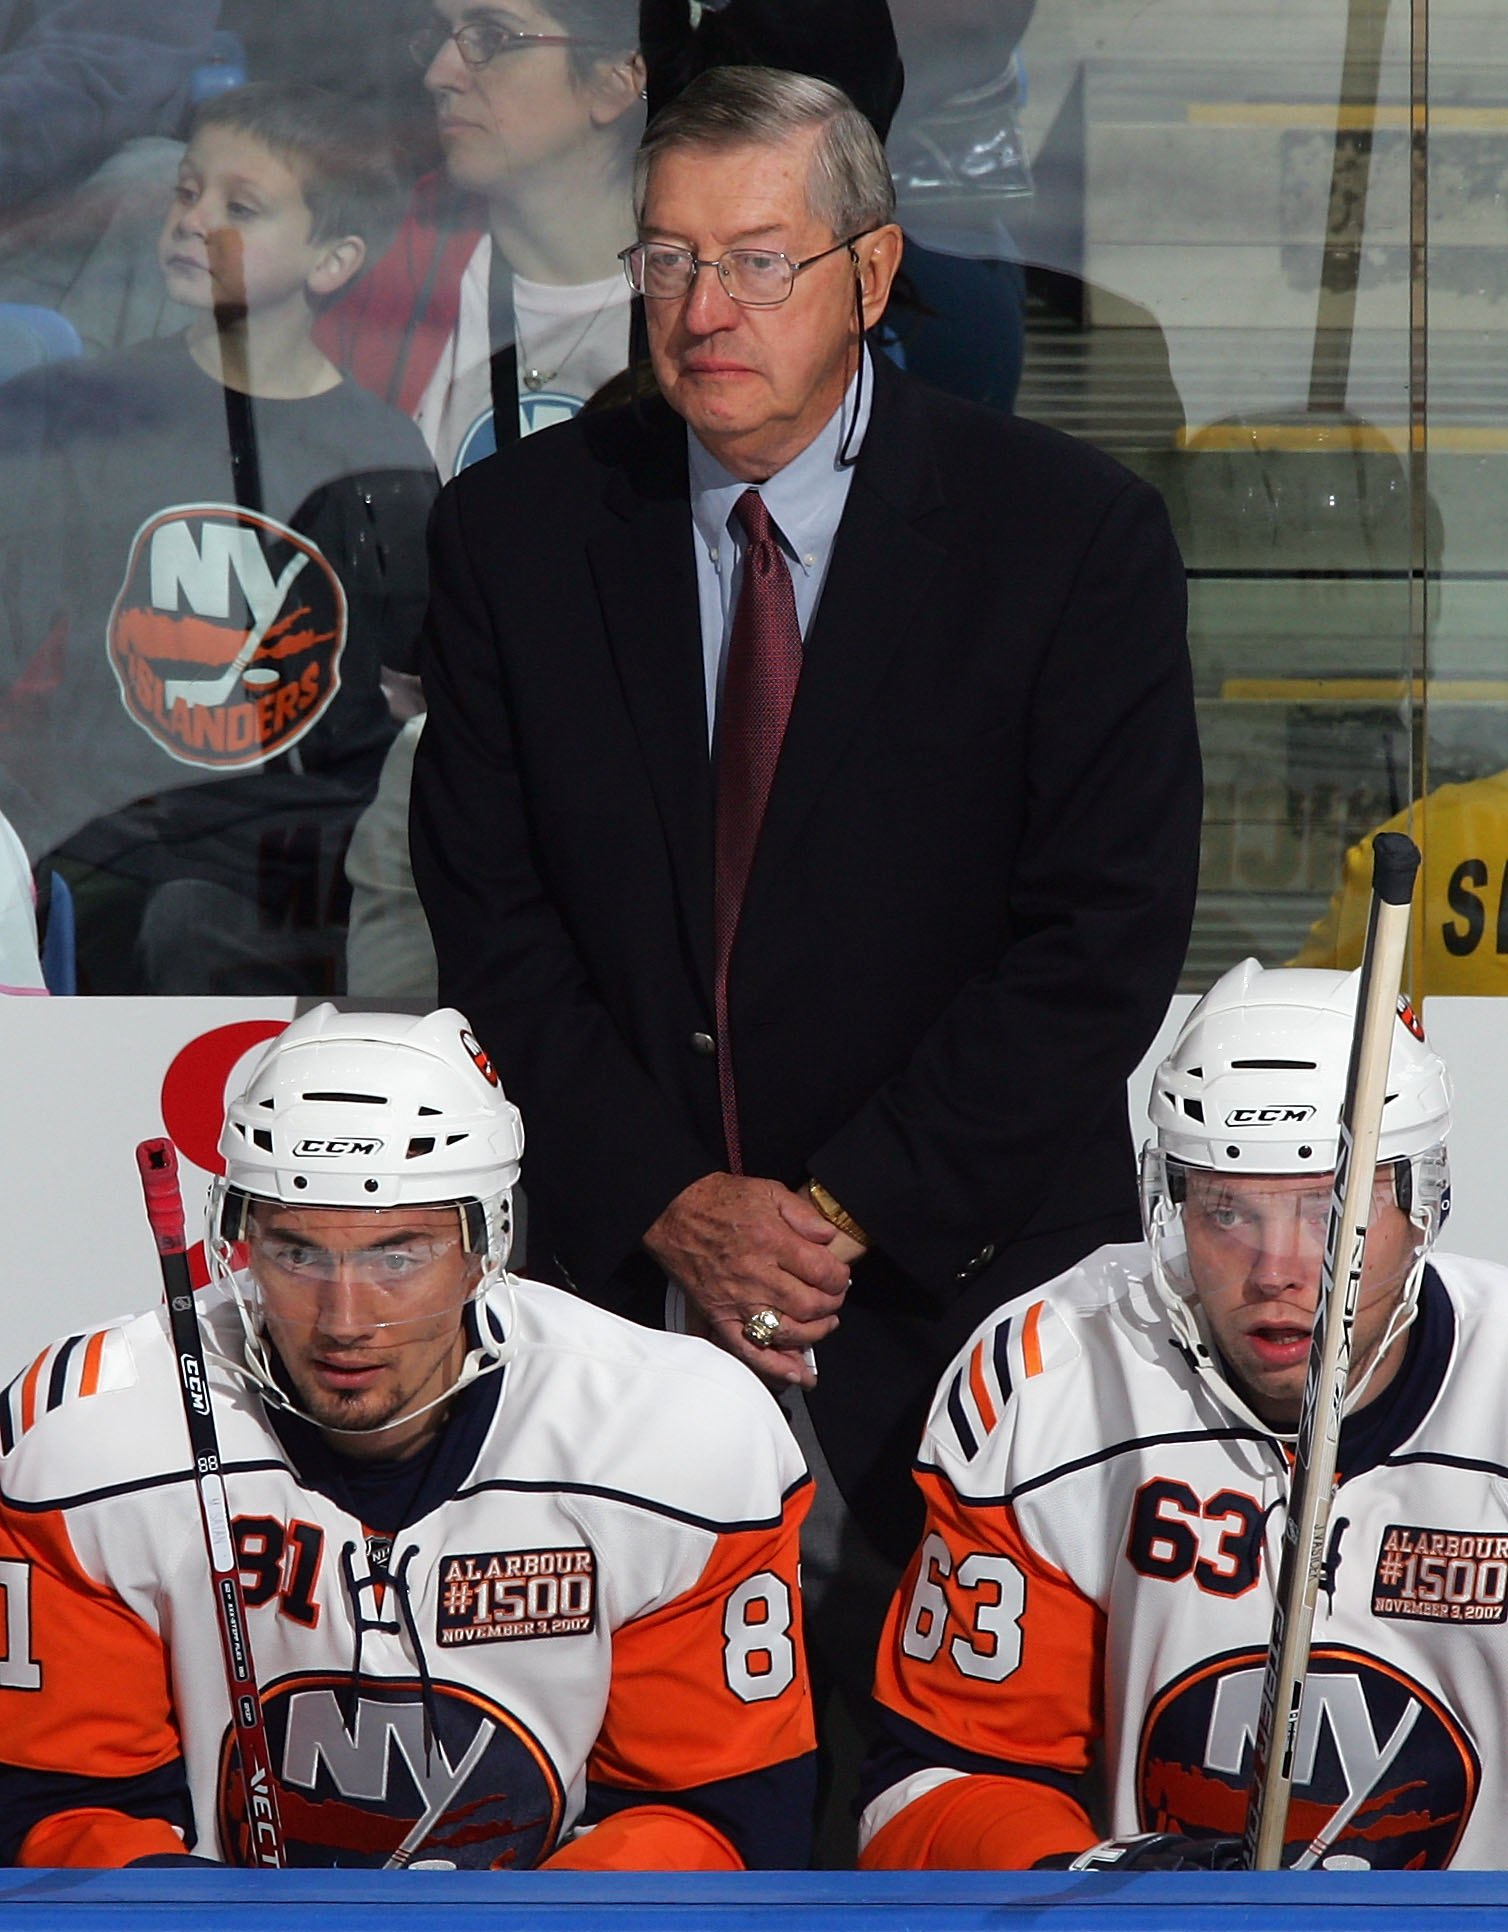 UNIONDALE, NY - NOVEMBER 03: Head coach Al Arbour of the New York Islanders stands behind the bench as he coaches his 1,500th game for the Islanders against the Pittsburgh Penguins on November 3, 2007 at Nassau Coliseum in Uniondale, New York. (Photo by J